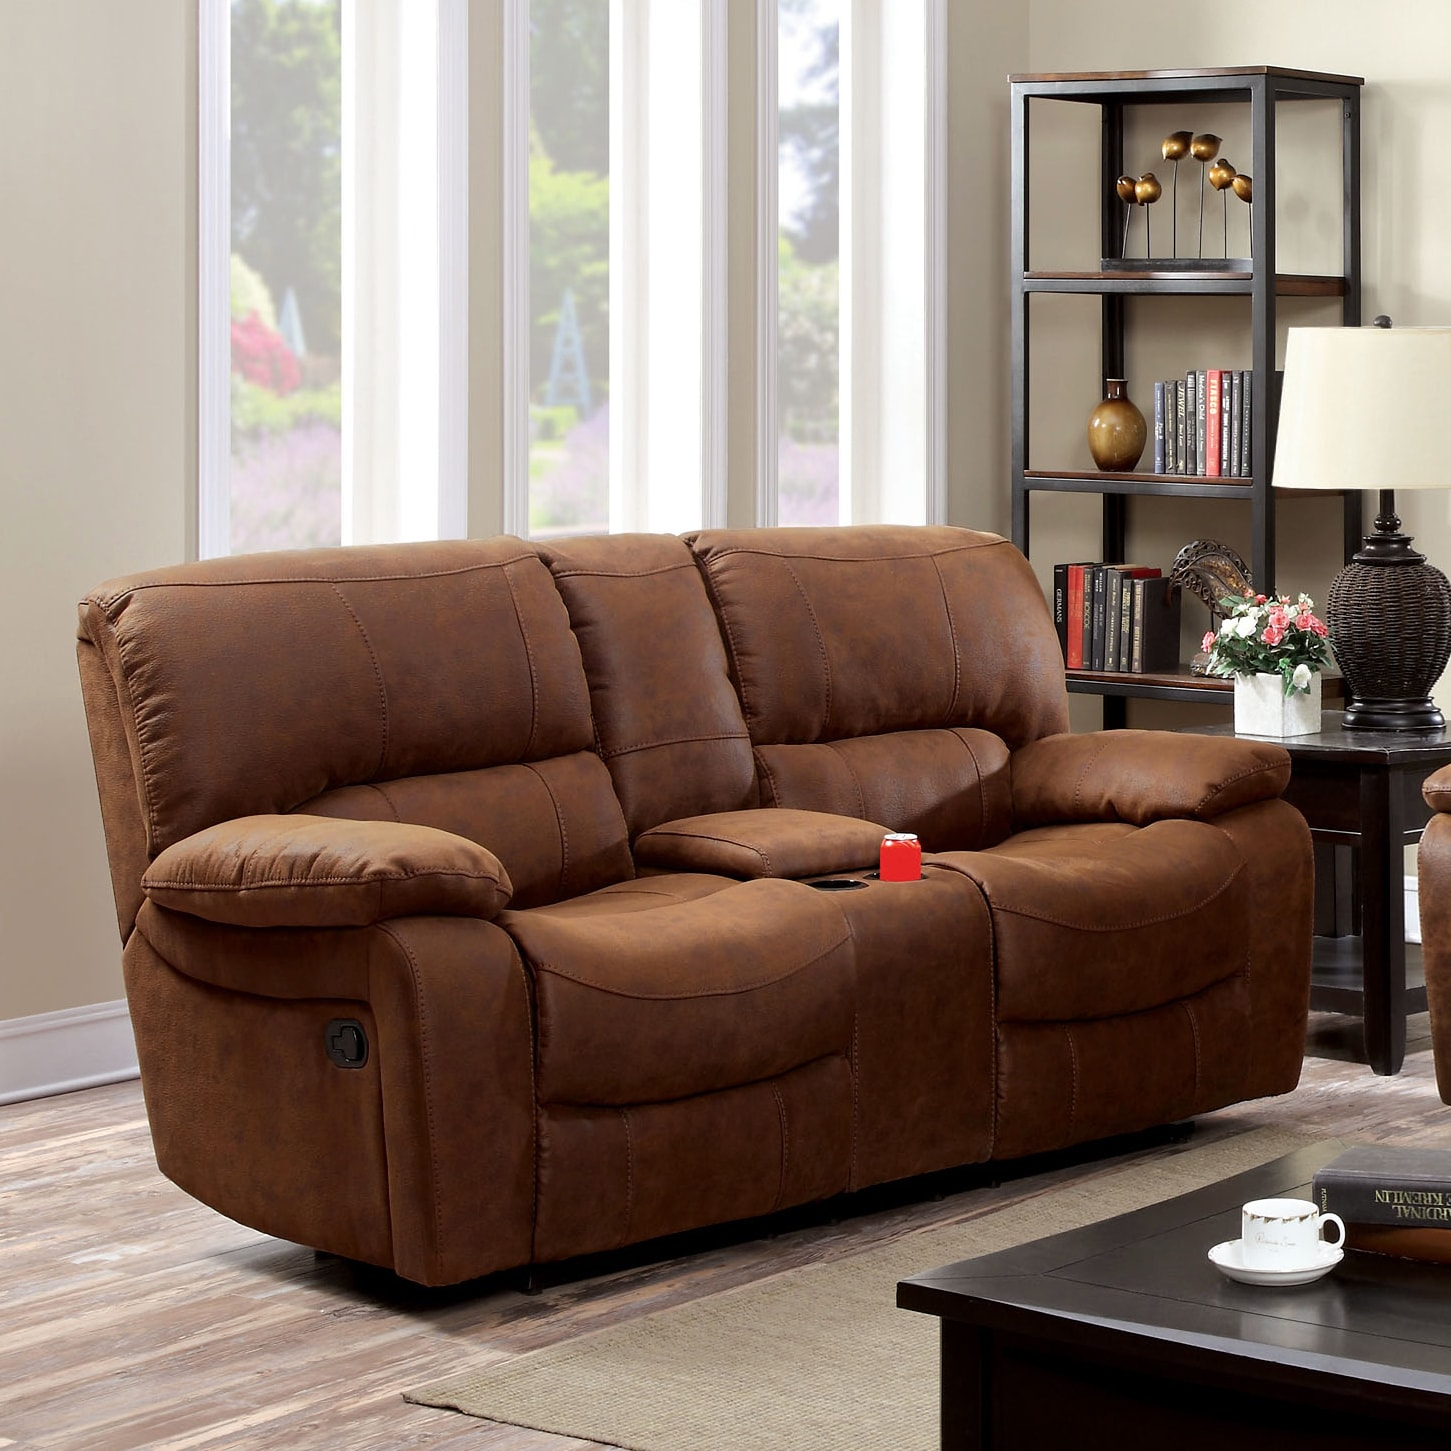 Furniture of America  Cameltone Brown Bonded Leather Reclining Loveseat with Console